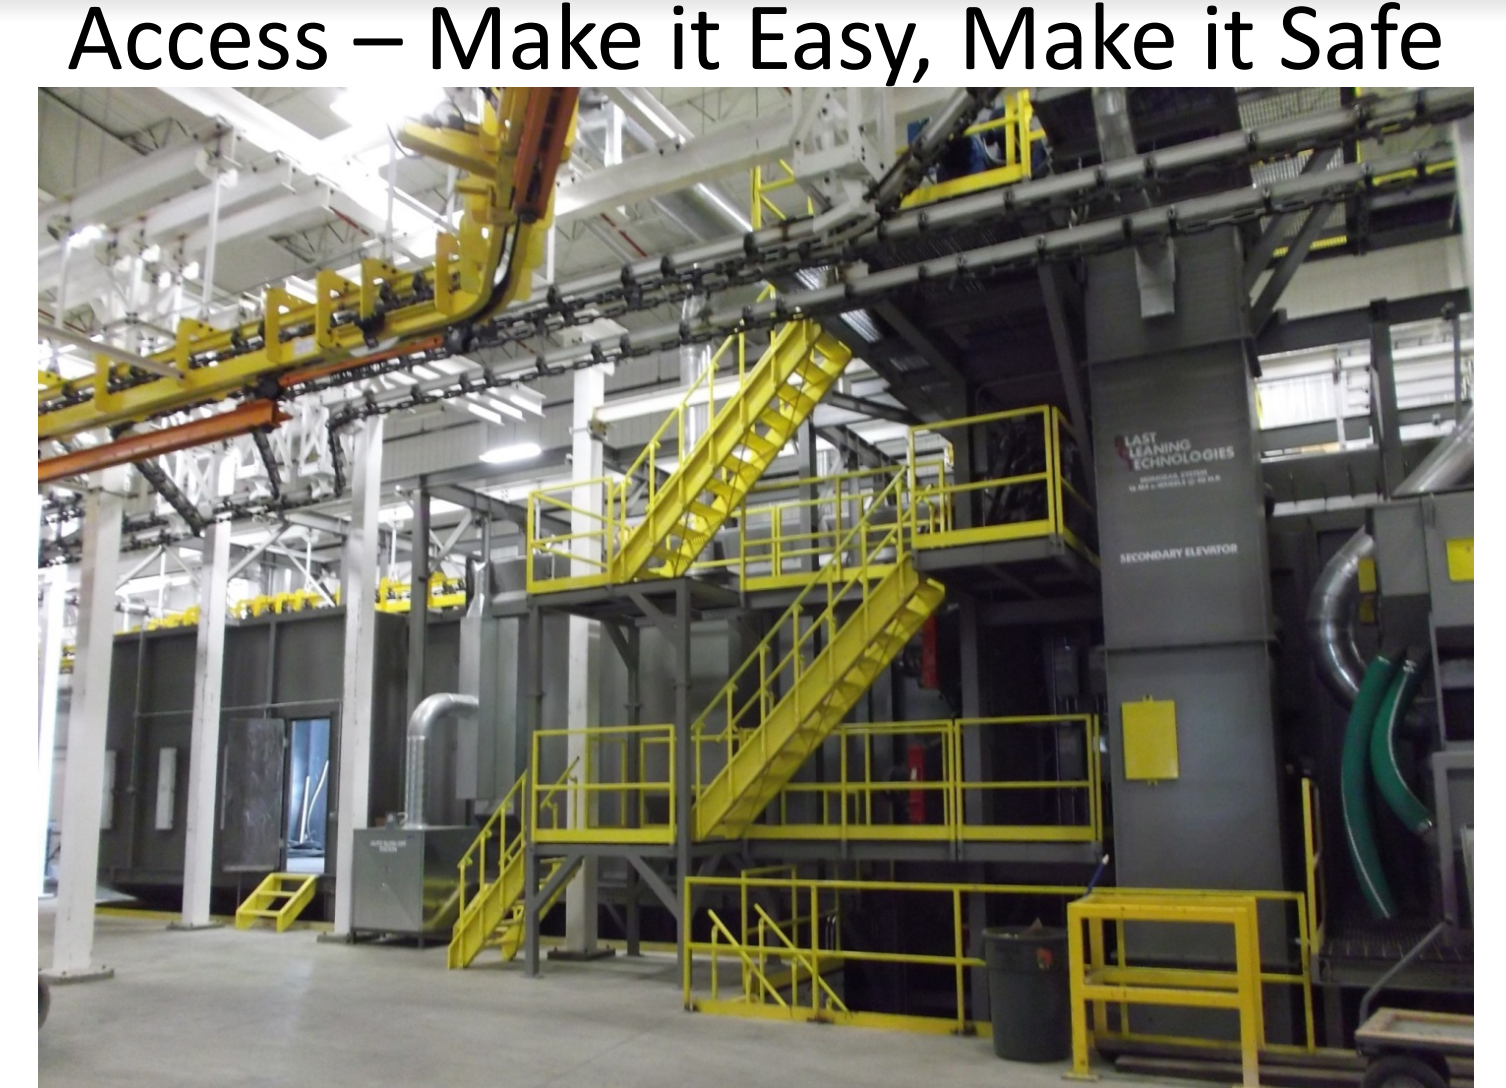 Blast Cleaning technologies shop floor security and accessibility